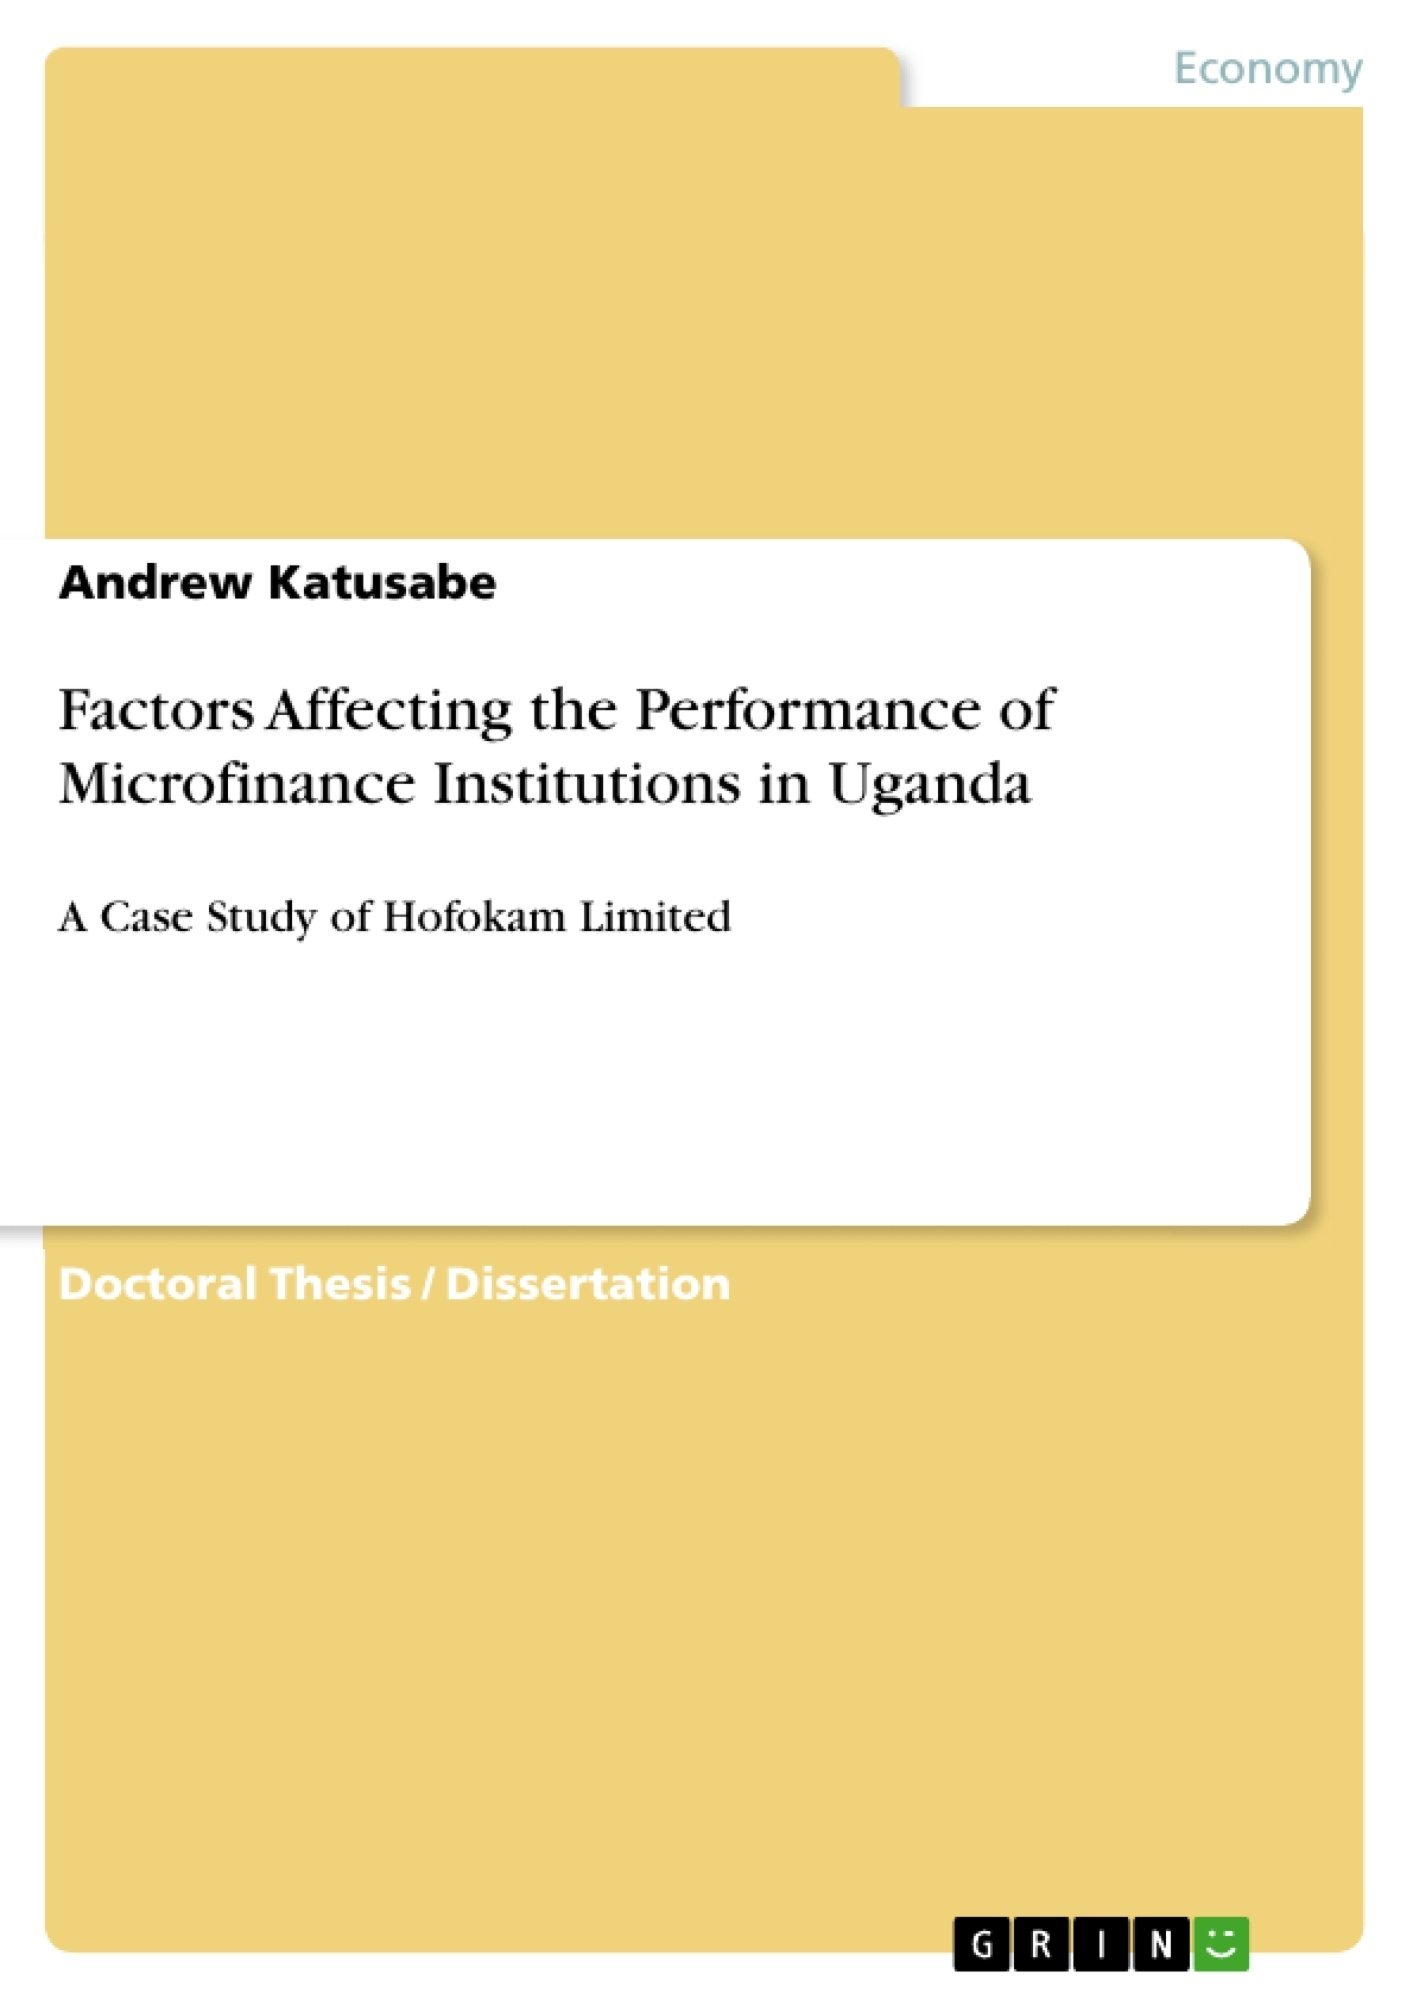 Thesis for microfinance